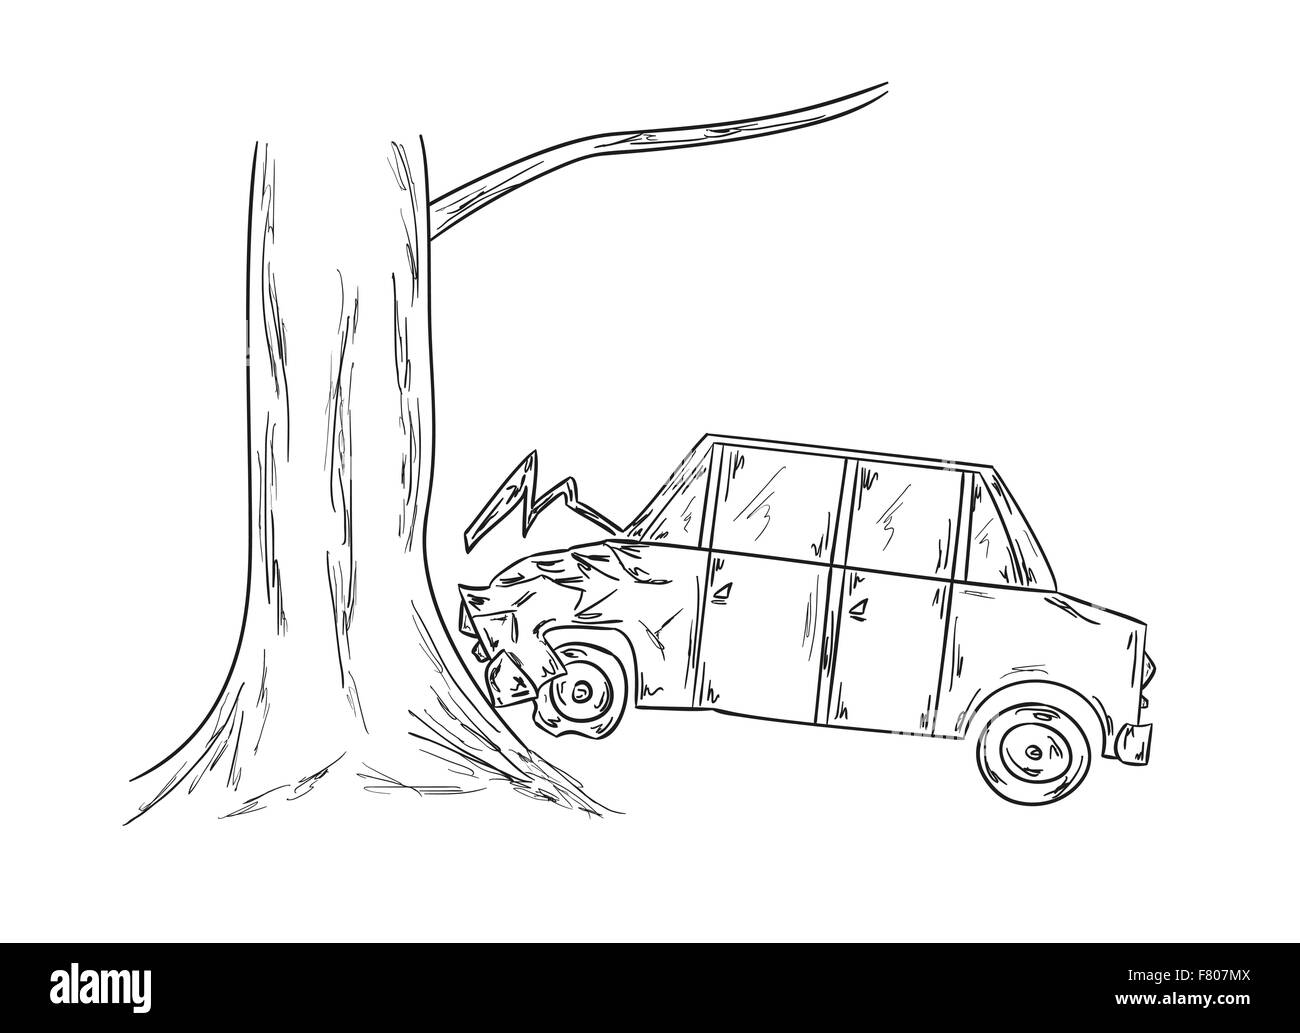 car accident sketch Stock Vector Art & Illustration, Vector Image ...